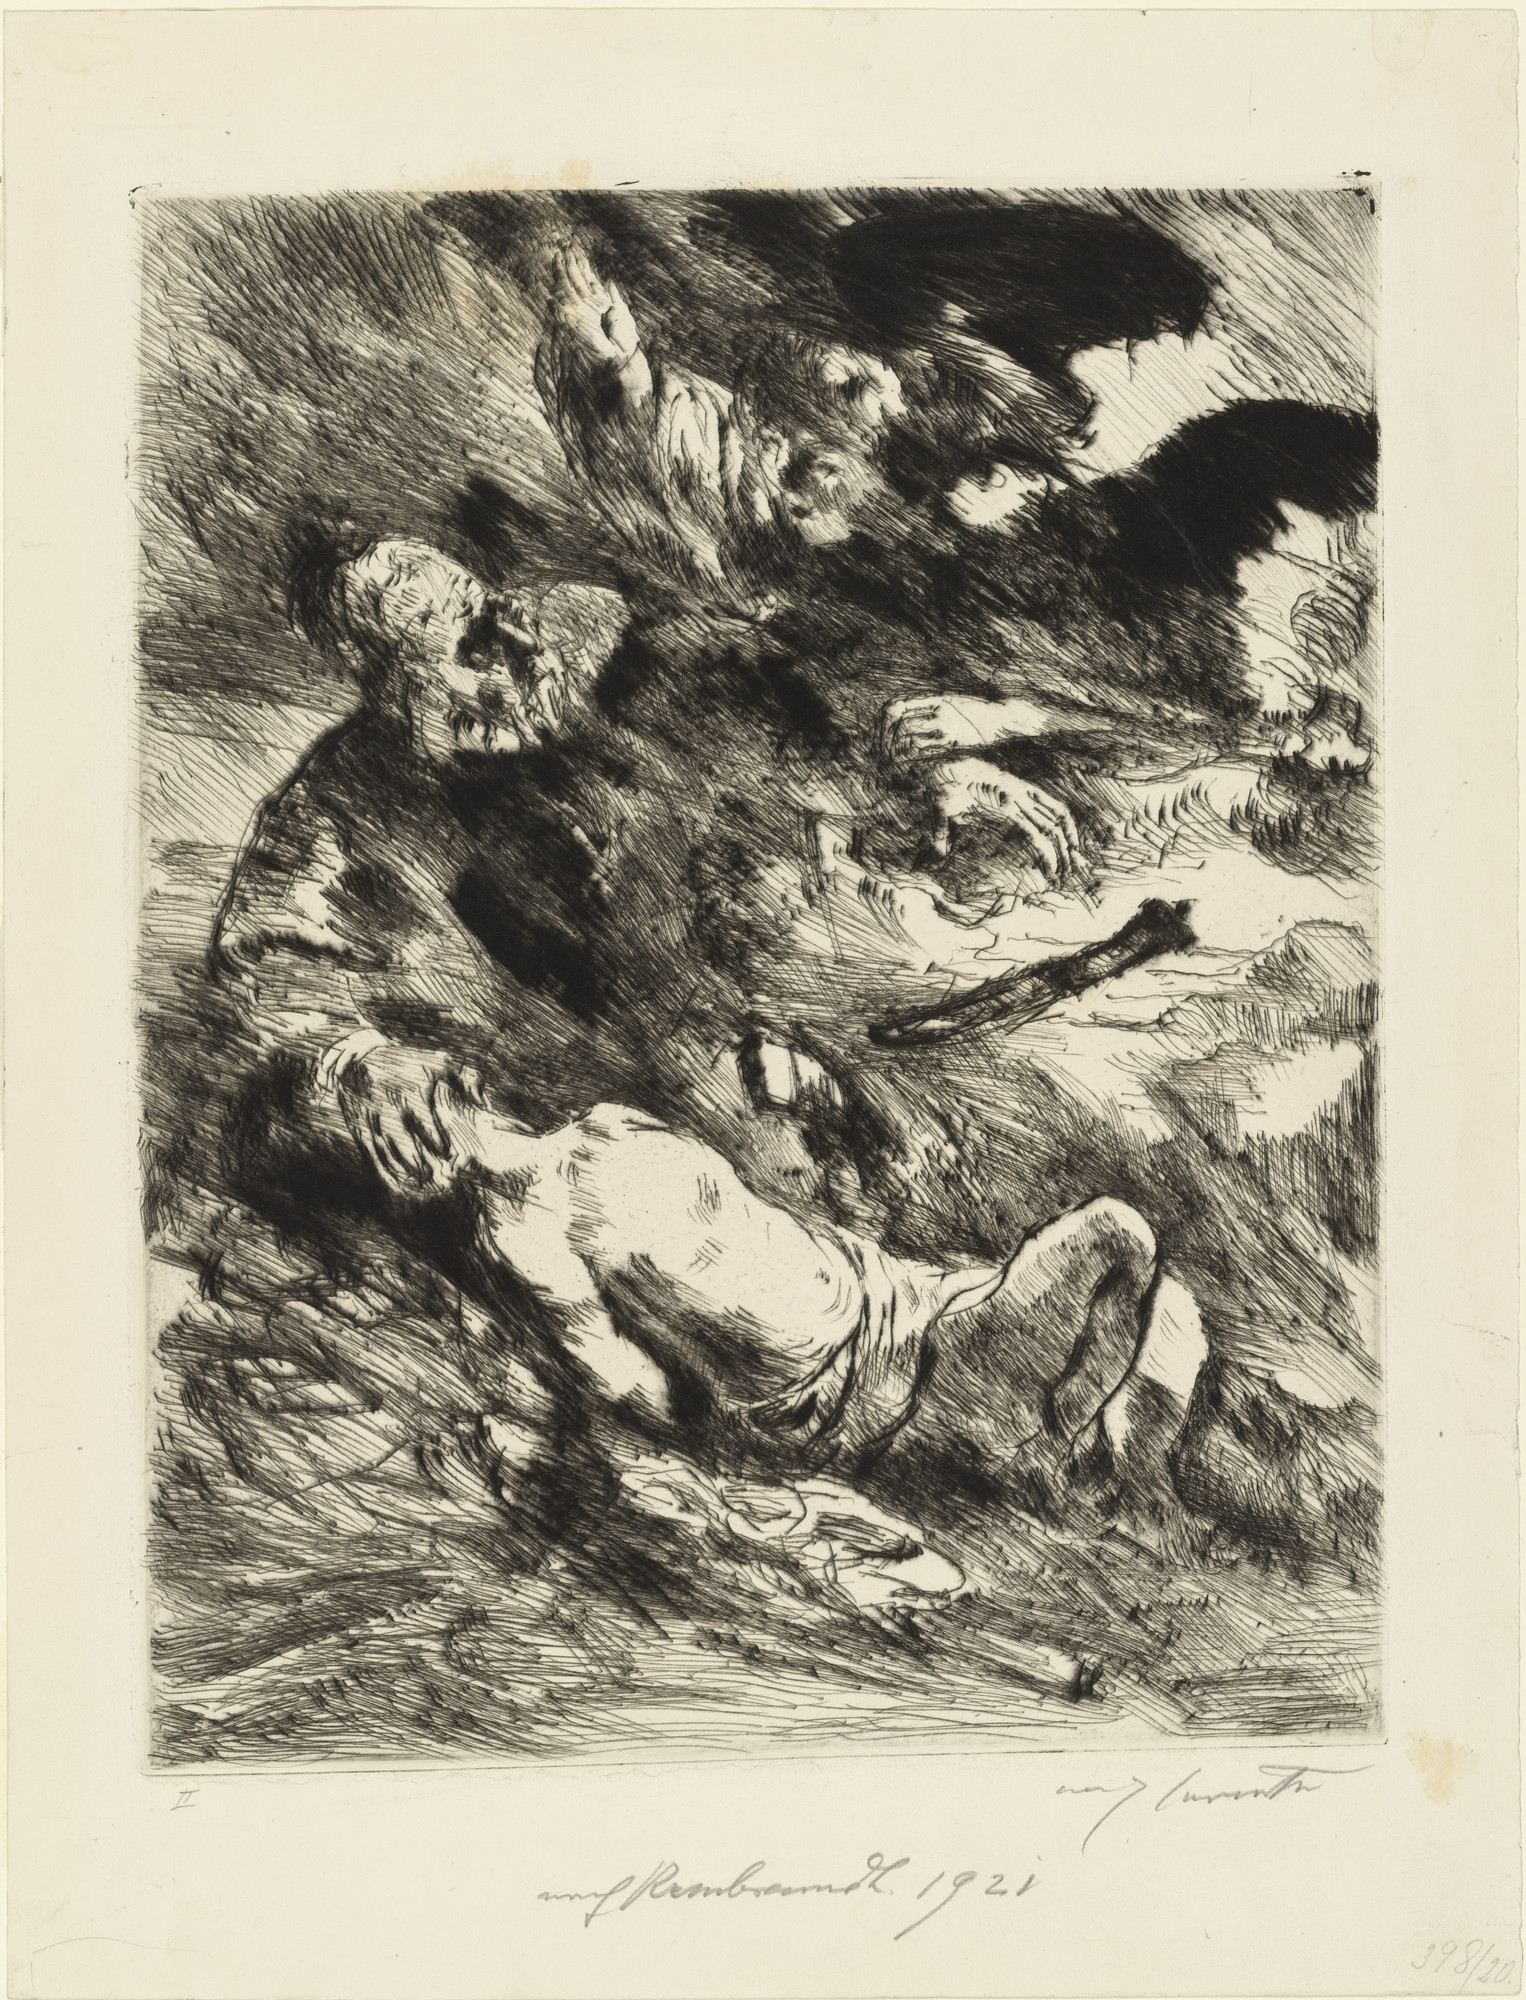 Lovis Corinth. The Sacrifice of Isaac: After Rembrandt (Die Opferung Isaacs: Nach Rembrandt). (1920), dated 1921